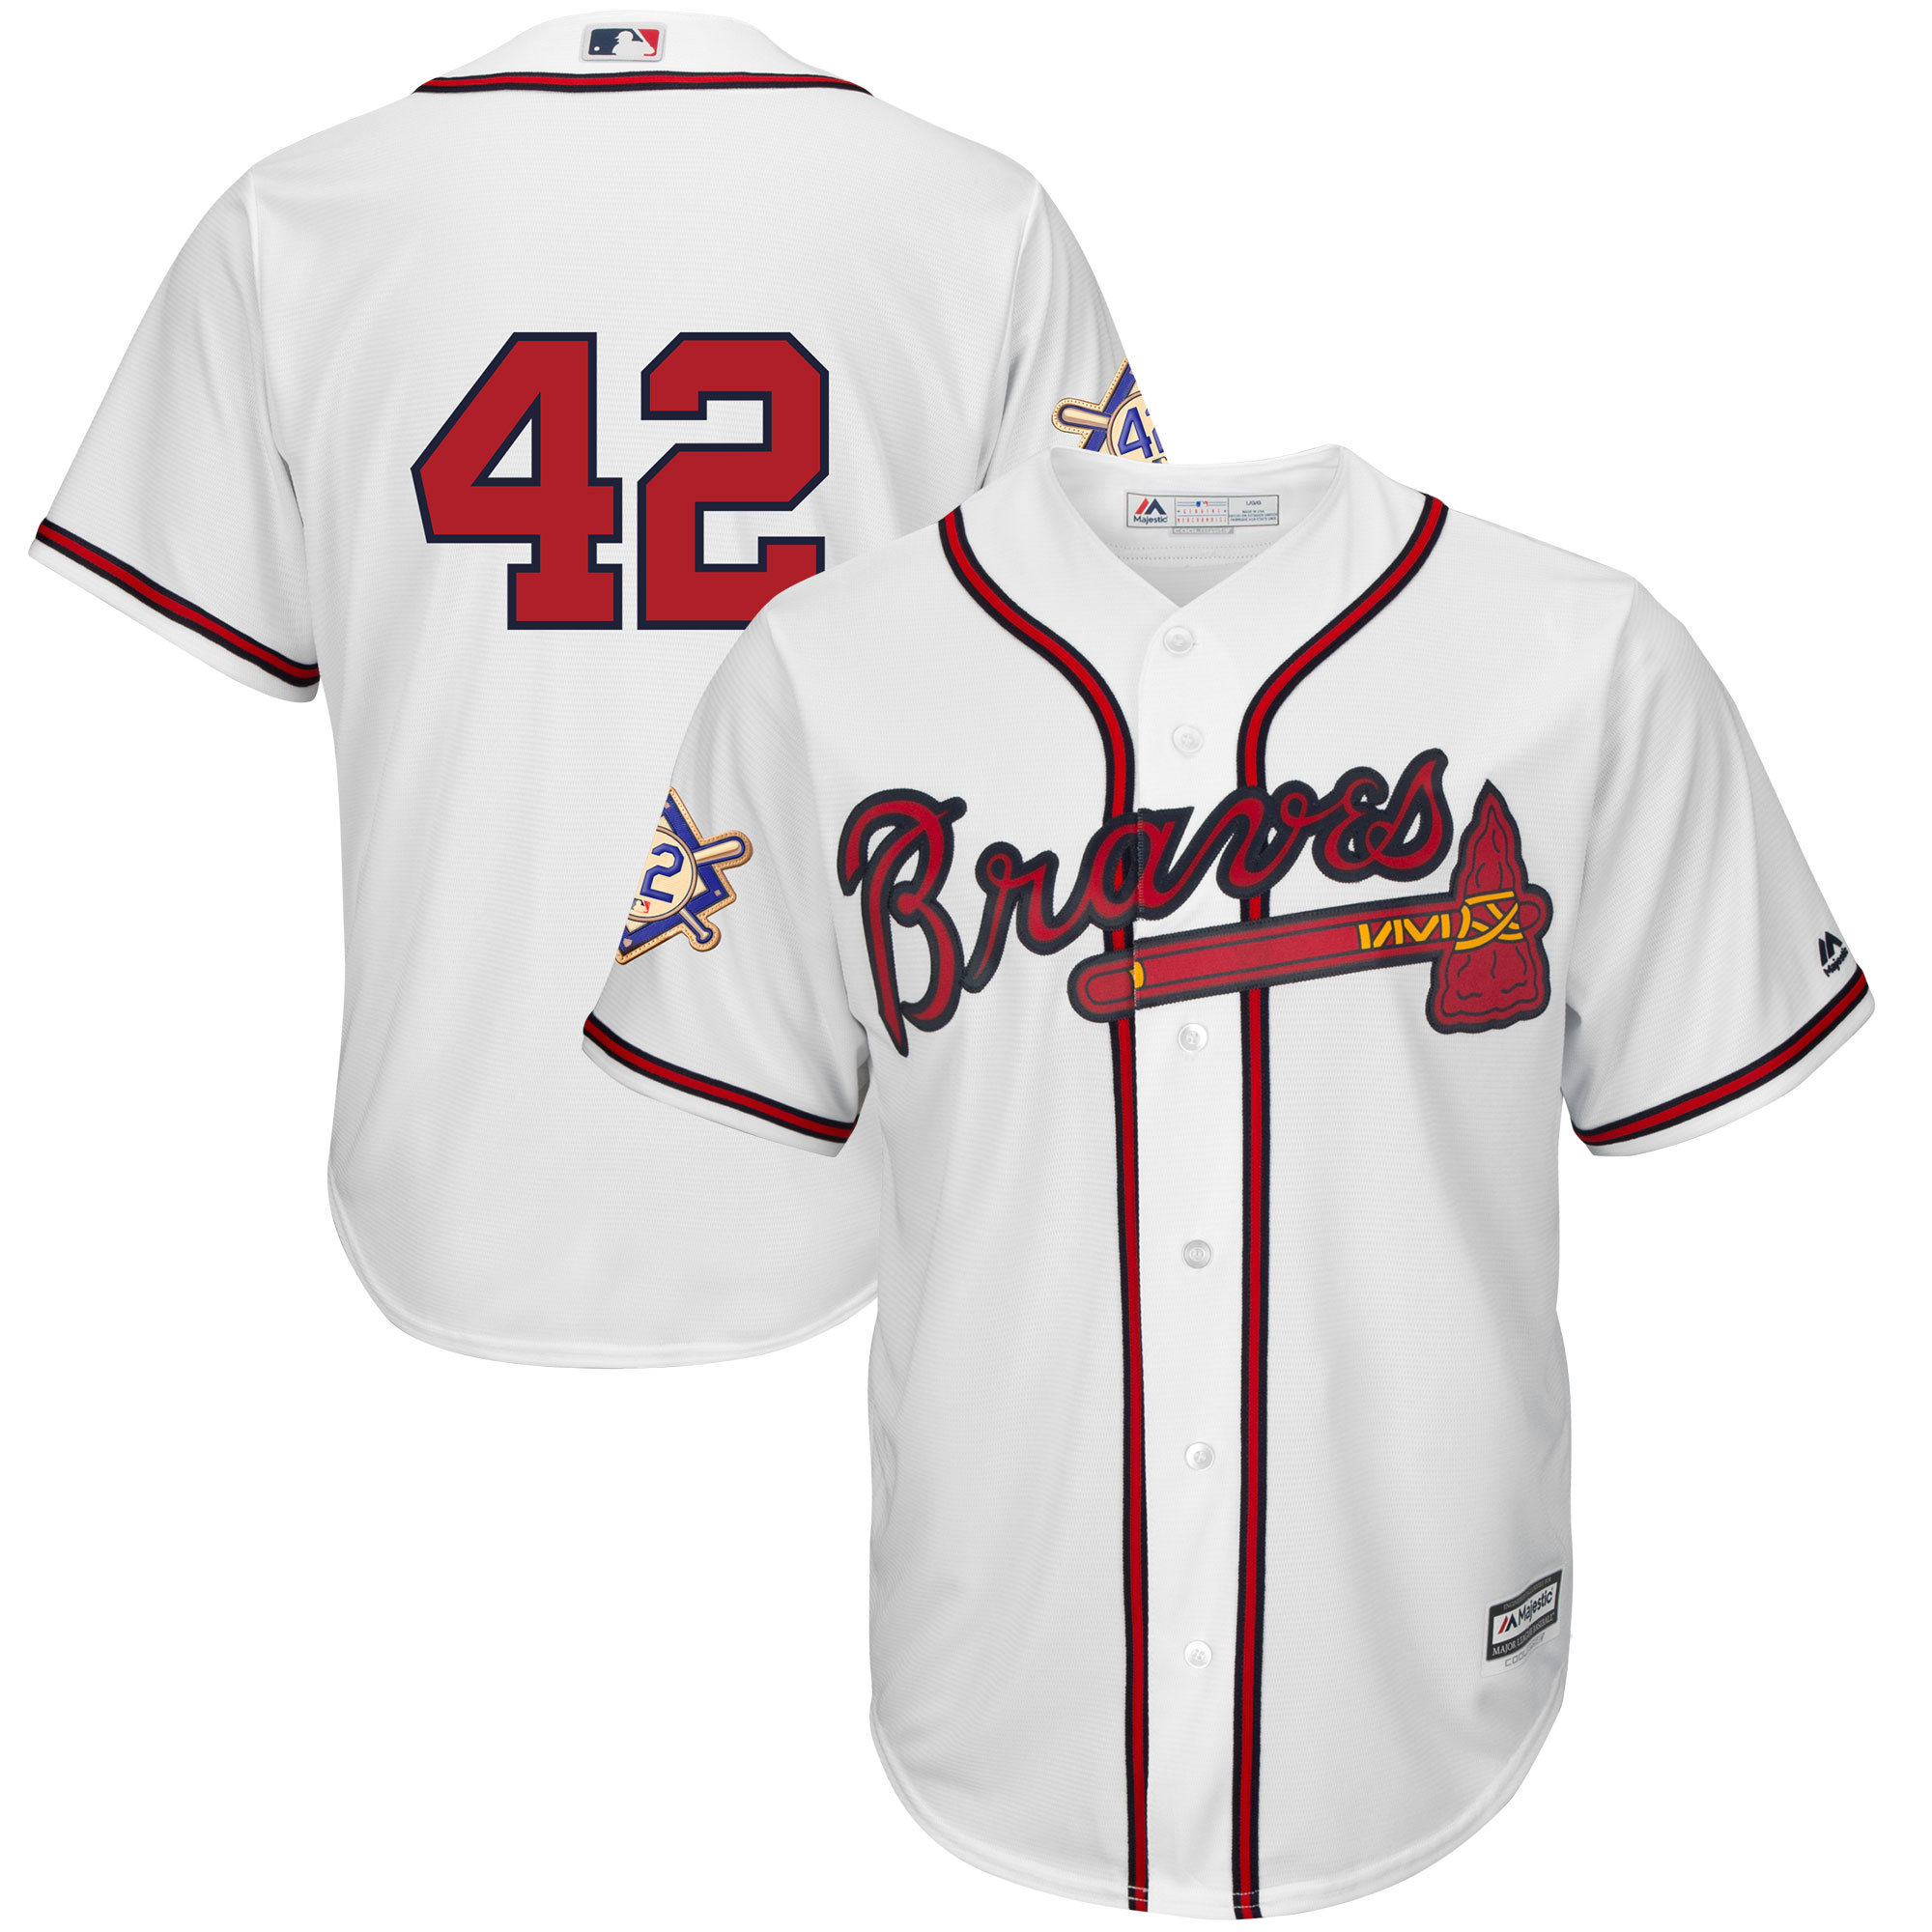 Atlanta Braves Majestic 2019 Jackie Robinson Day Official Cool Base Jersey - White